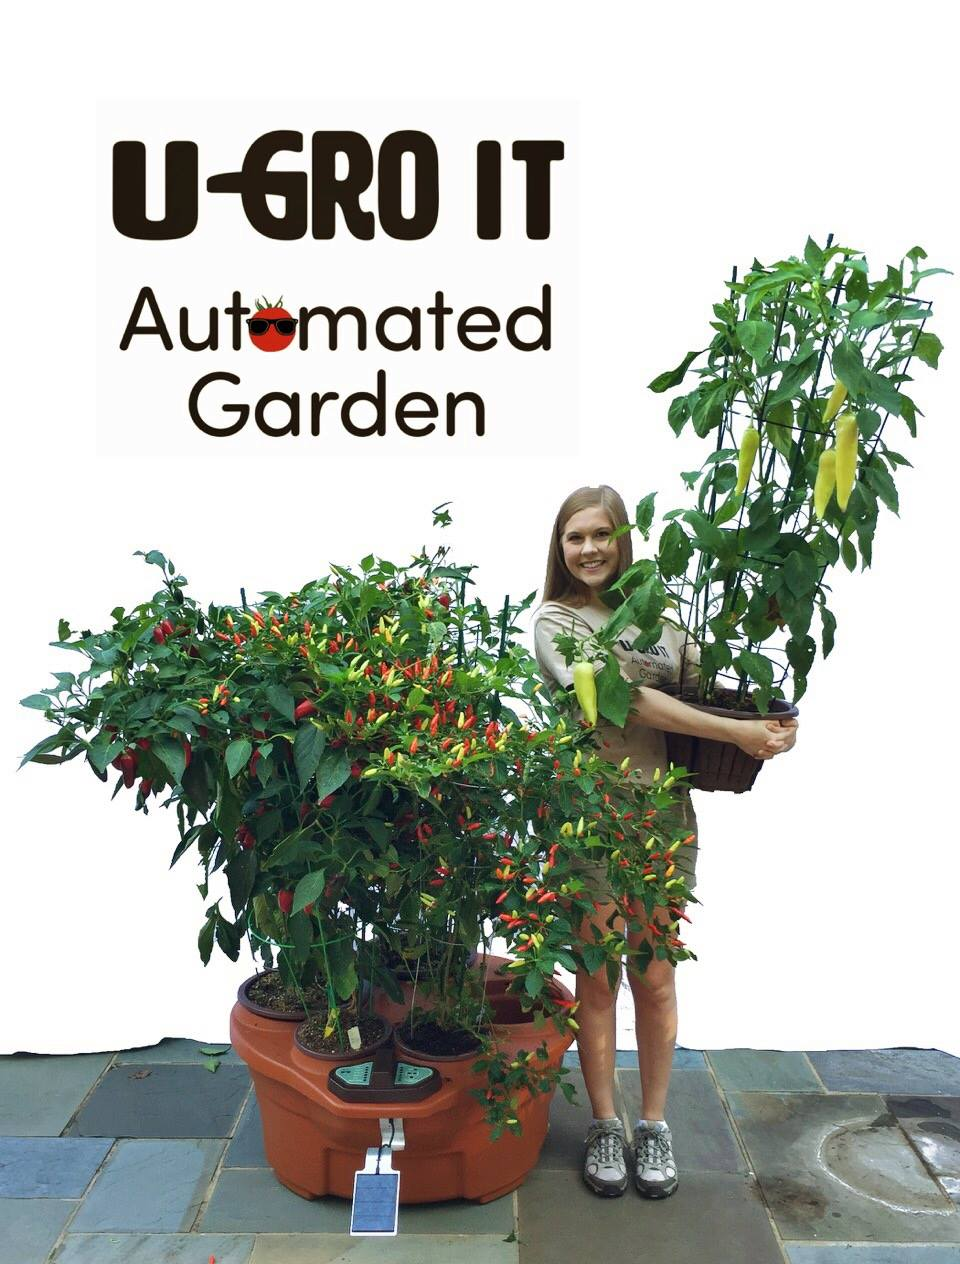 U-GroIT Automated Garden